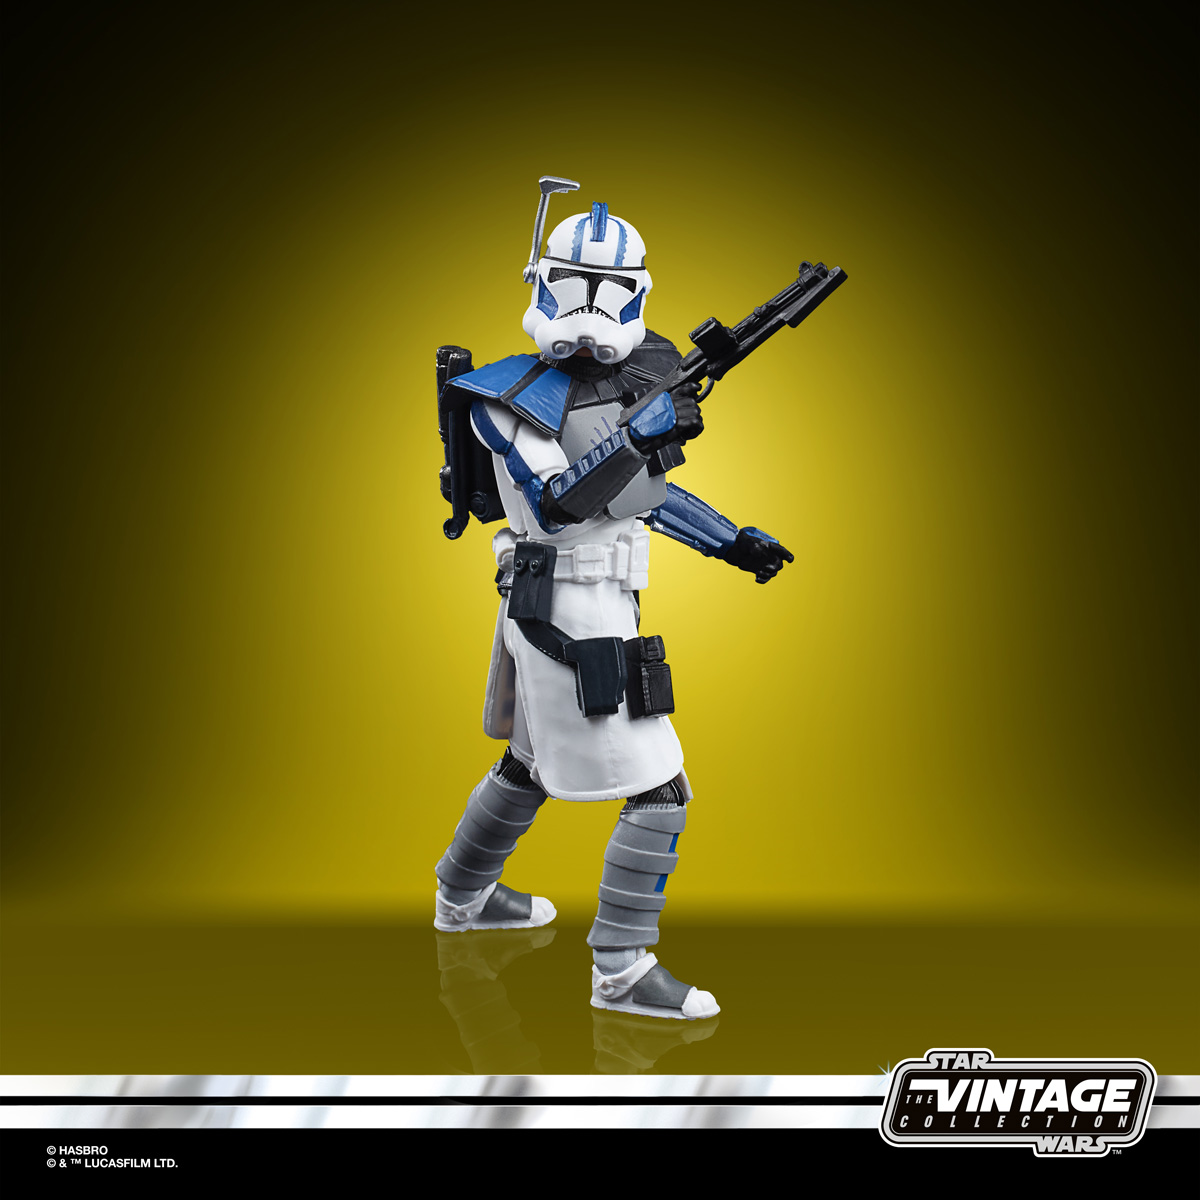 star-wars-the-vintage-collection-star-wars-the-clone-wars-501st-legion-arc-troopers-figure-3-pack-oop-7